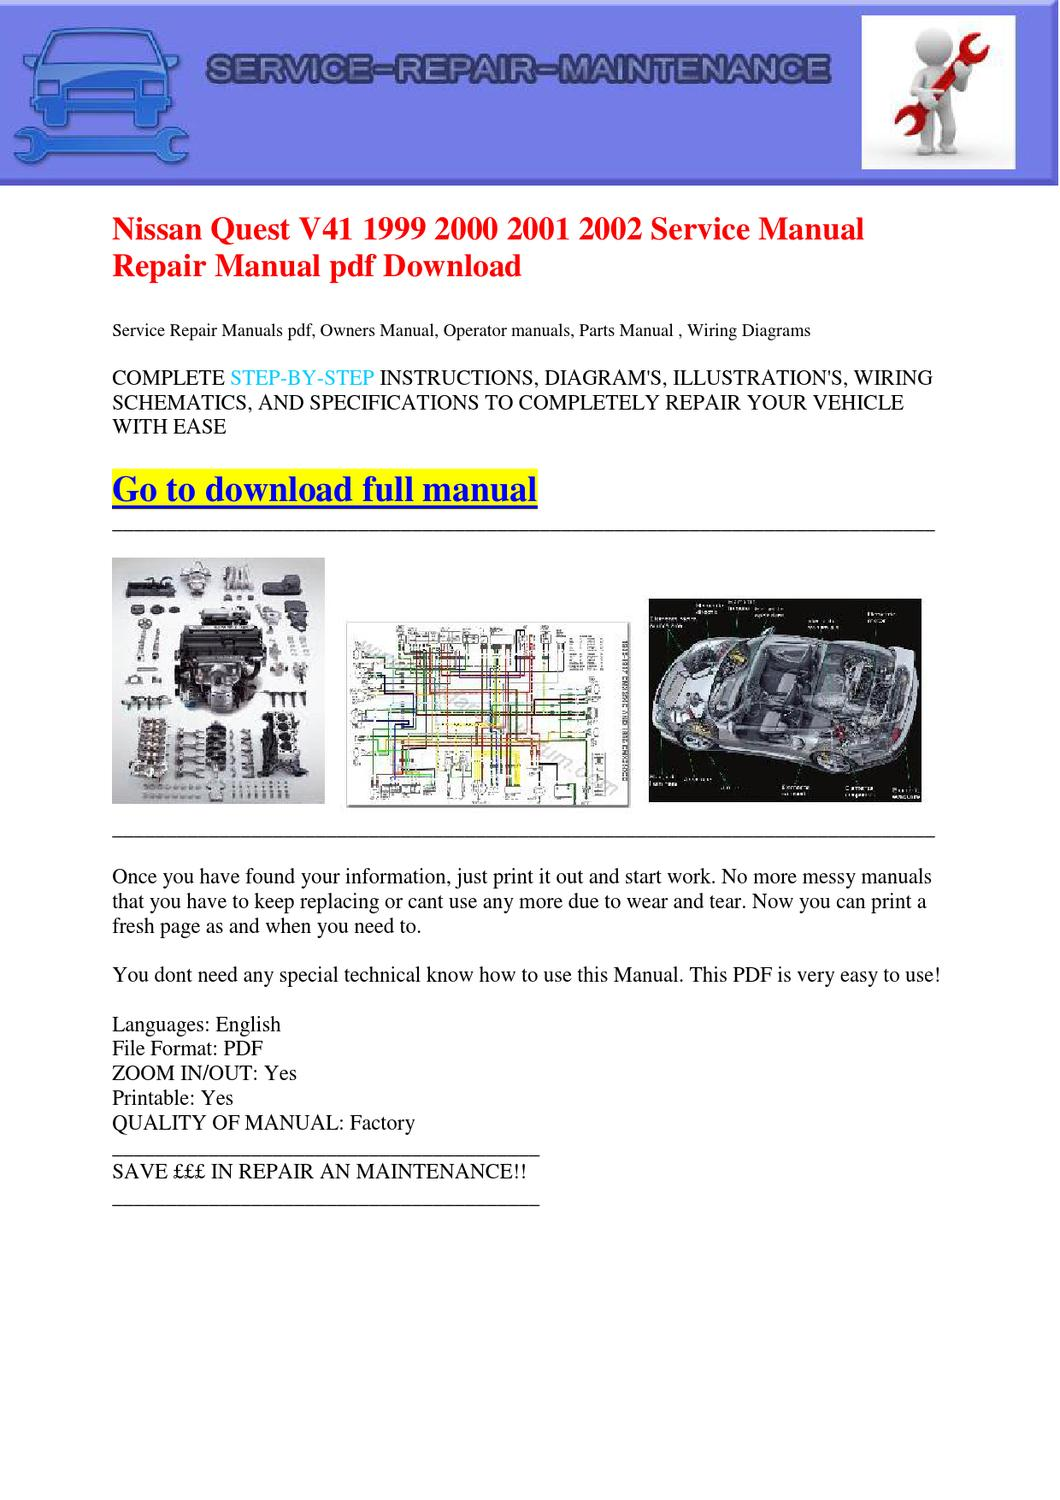 Nissan Quest V41 1999 2000 2001 2002 Service Manual Repair Manual pdf  Download by Dernis Castan - issuu